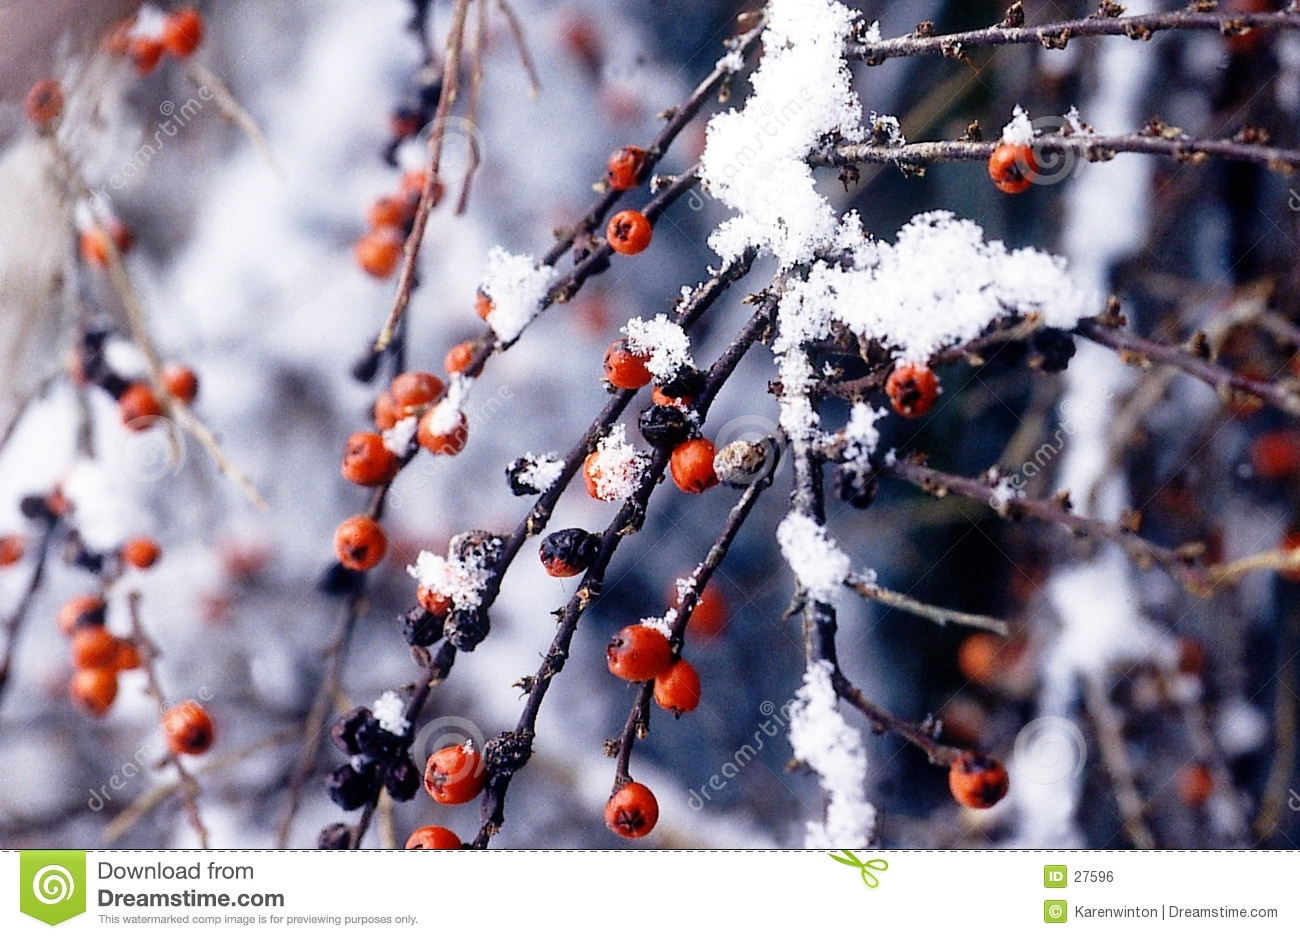 Winter berries in snow